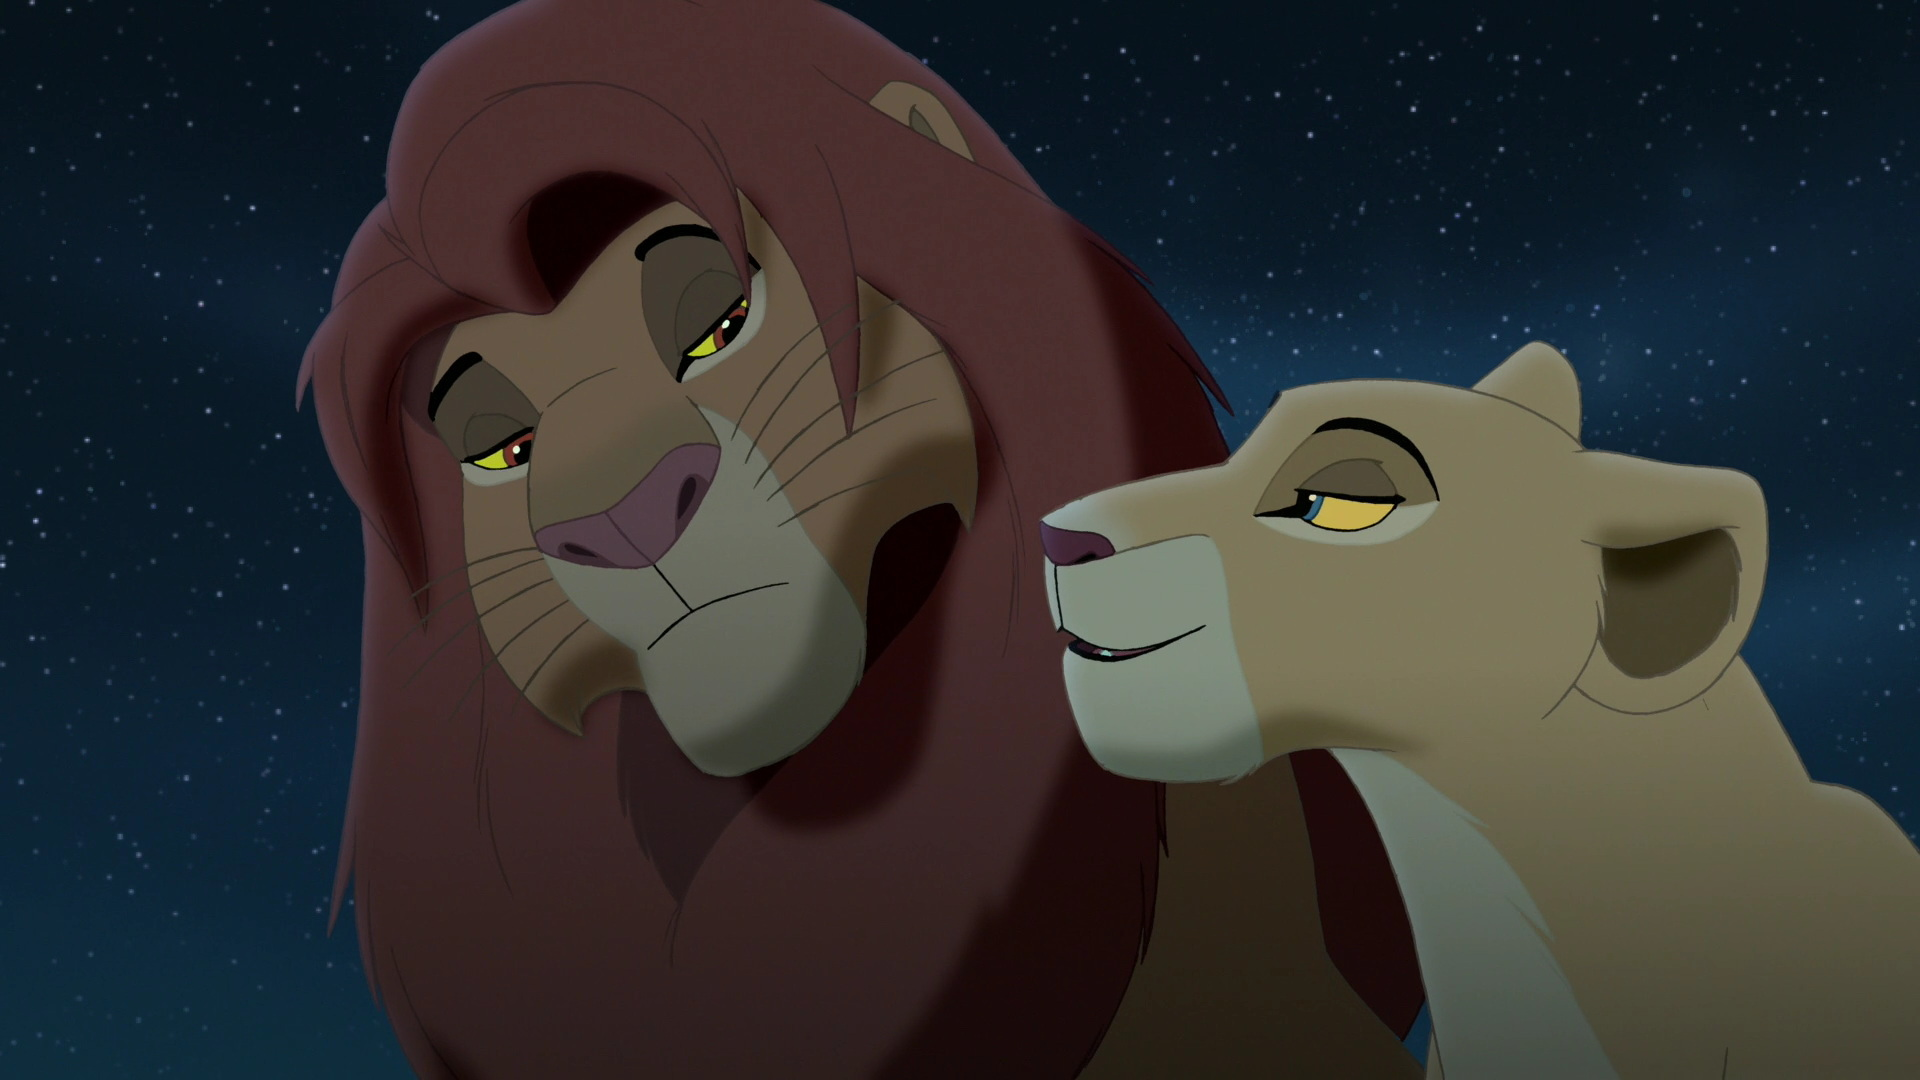 We never get to see Simba and Nala kiss by touching their ...